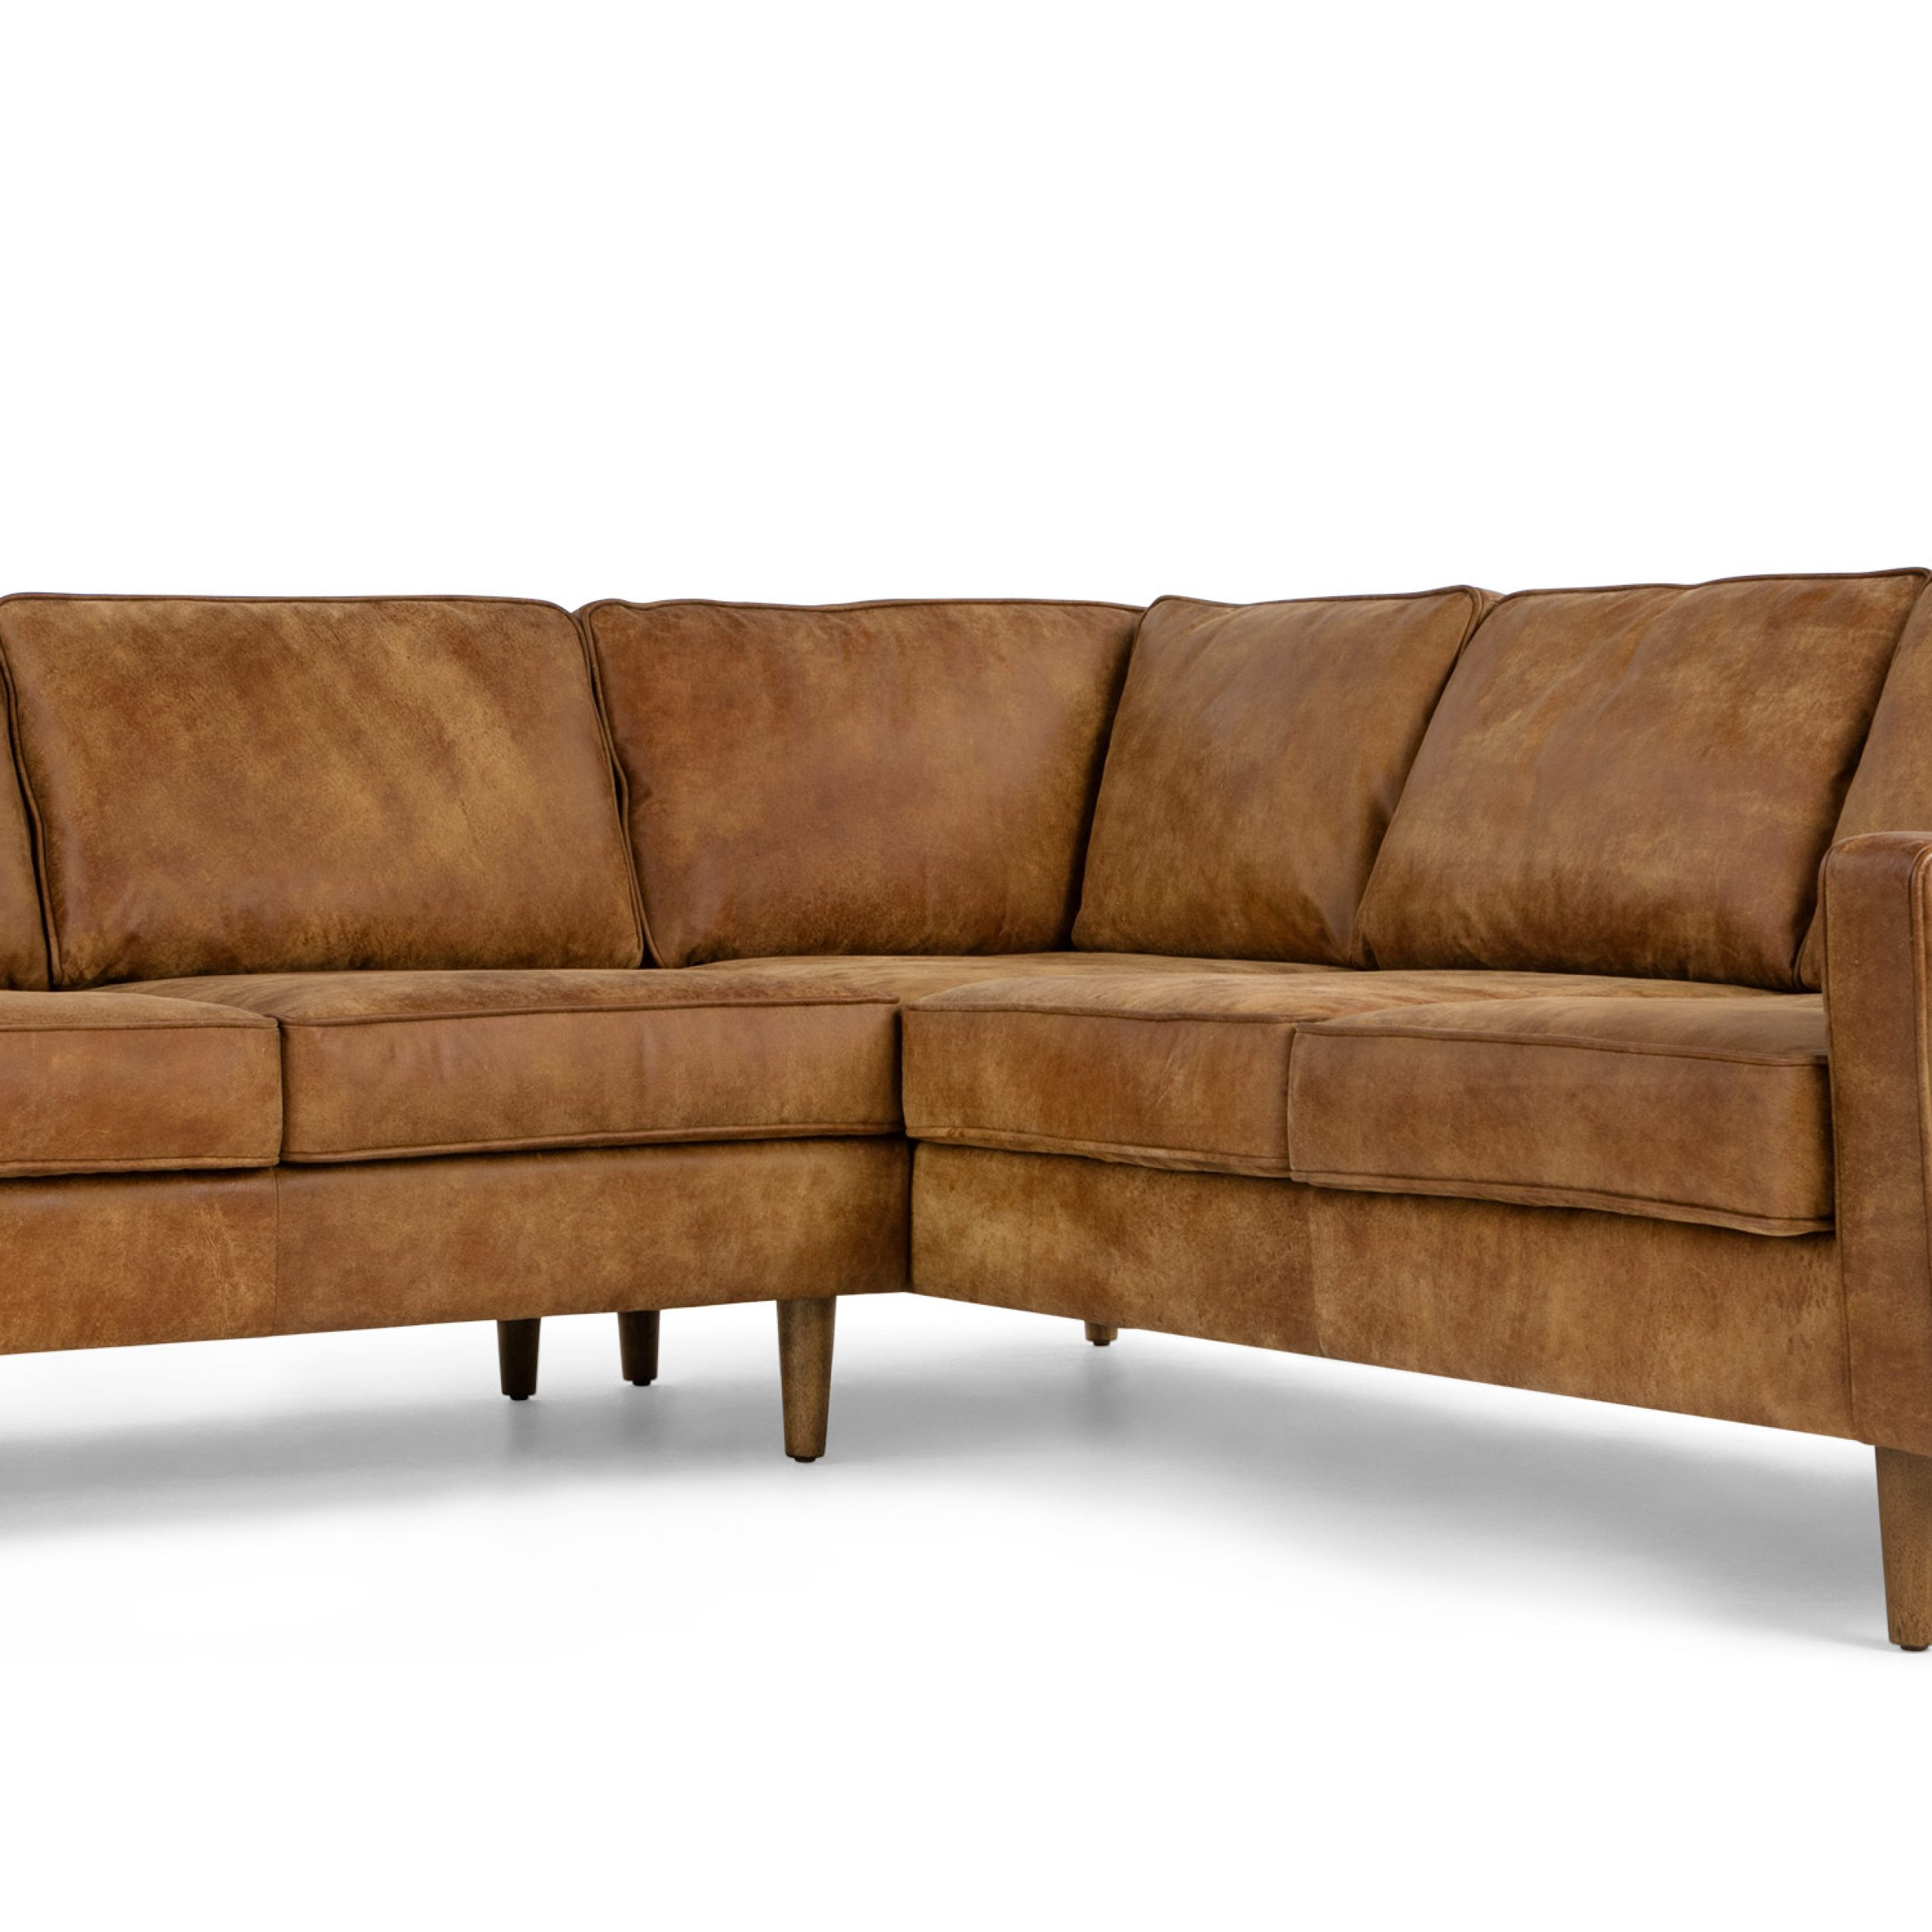 Dallas Corner Sofa, Outback Tan Premium Leather   Made Intended For Leather Corner Sofas (View 14 of 15)